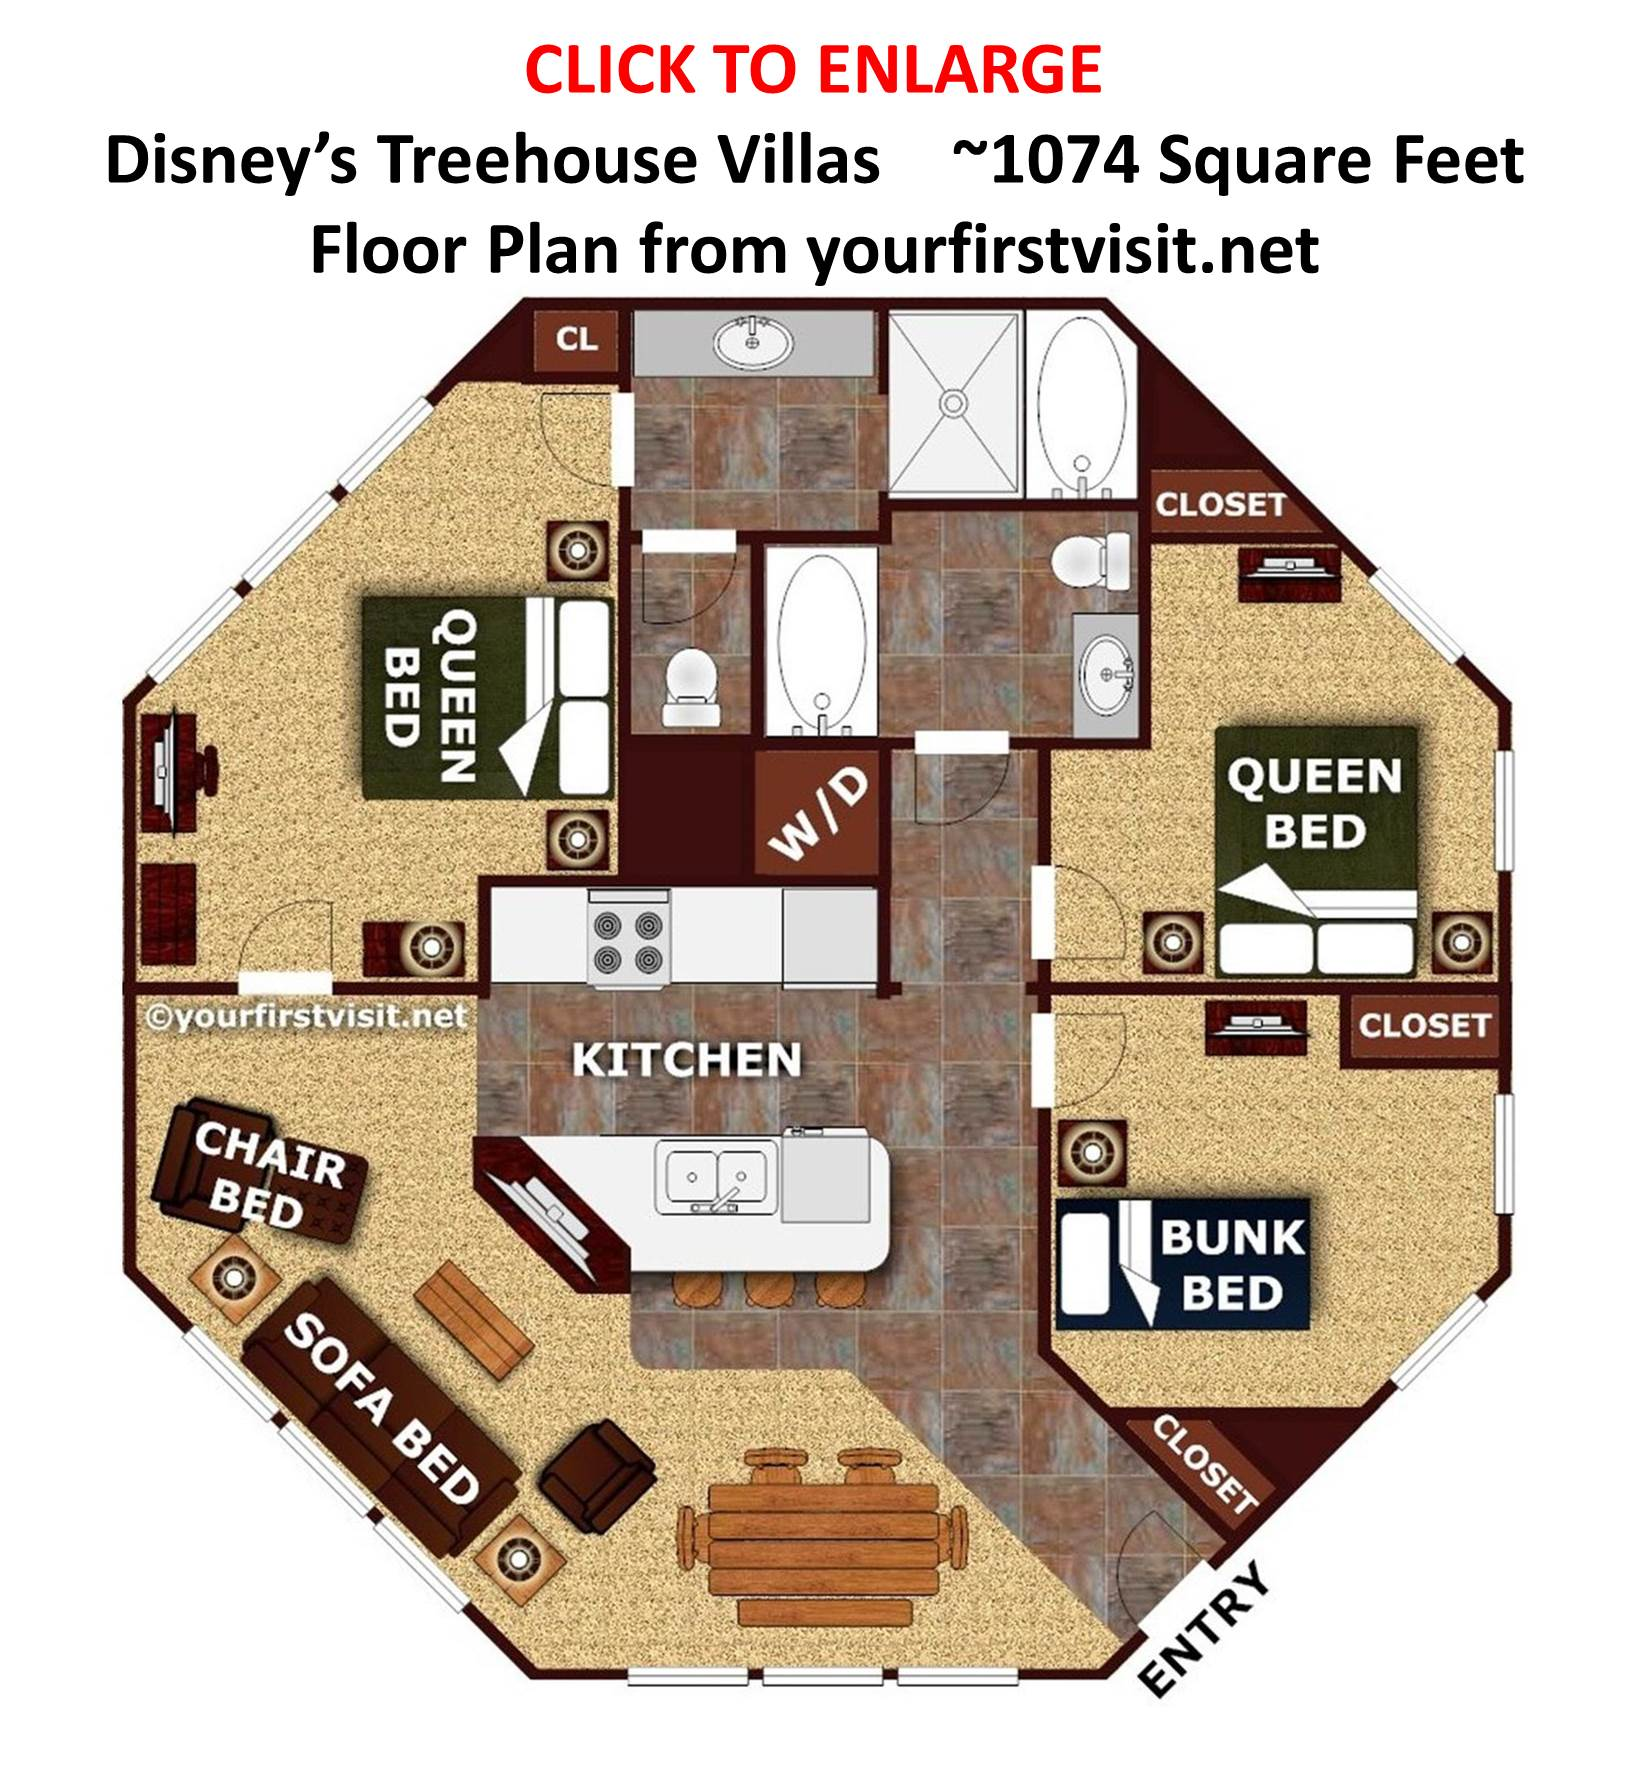 tree house floor plans. Floor Plan Disney\u0027s Treehouse Villas From Yourfirstvisit.net Tree House Floor Plans E